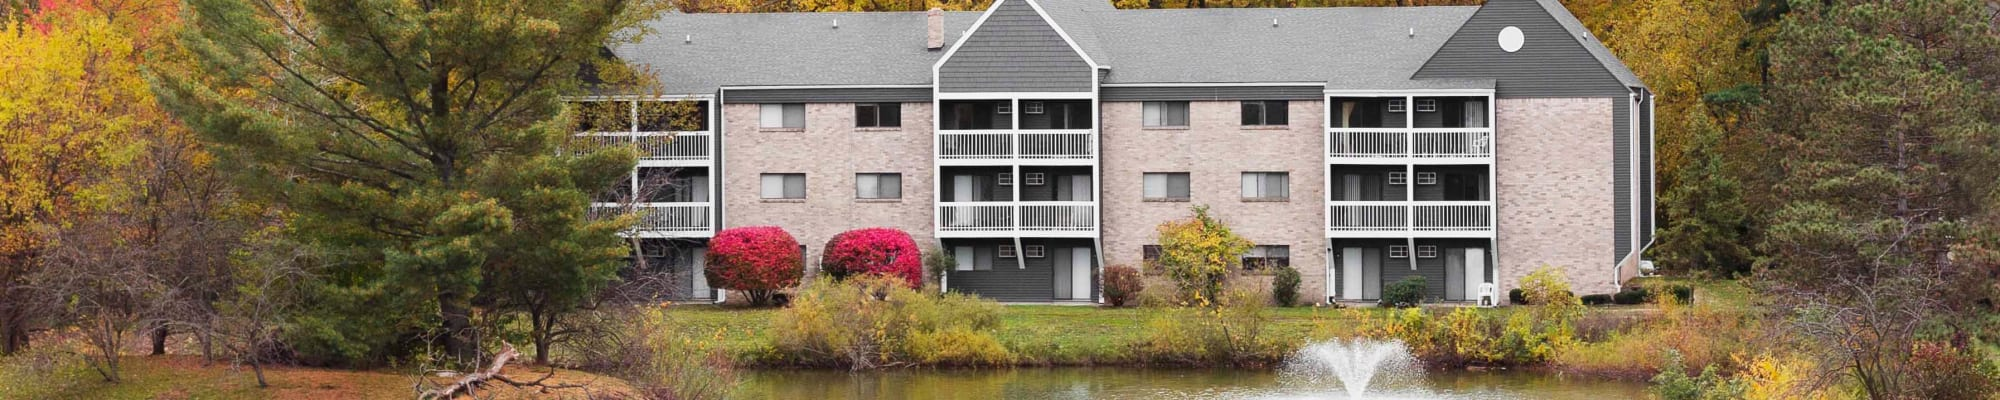 Schedule a Tour at Kellogg Cove Apartments in Kentwood, Michigan